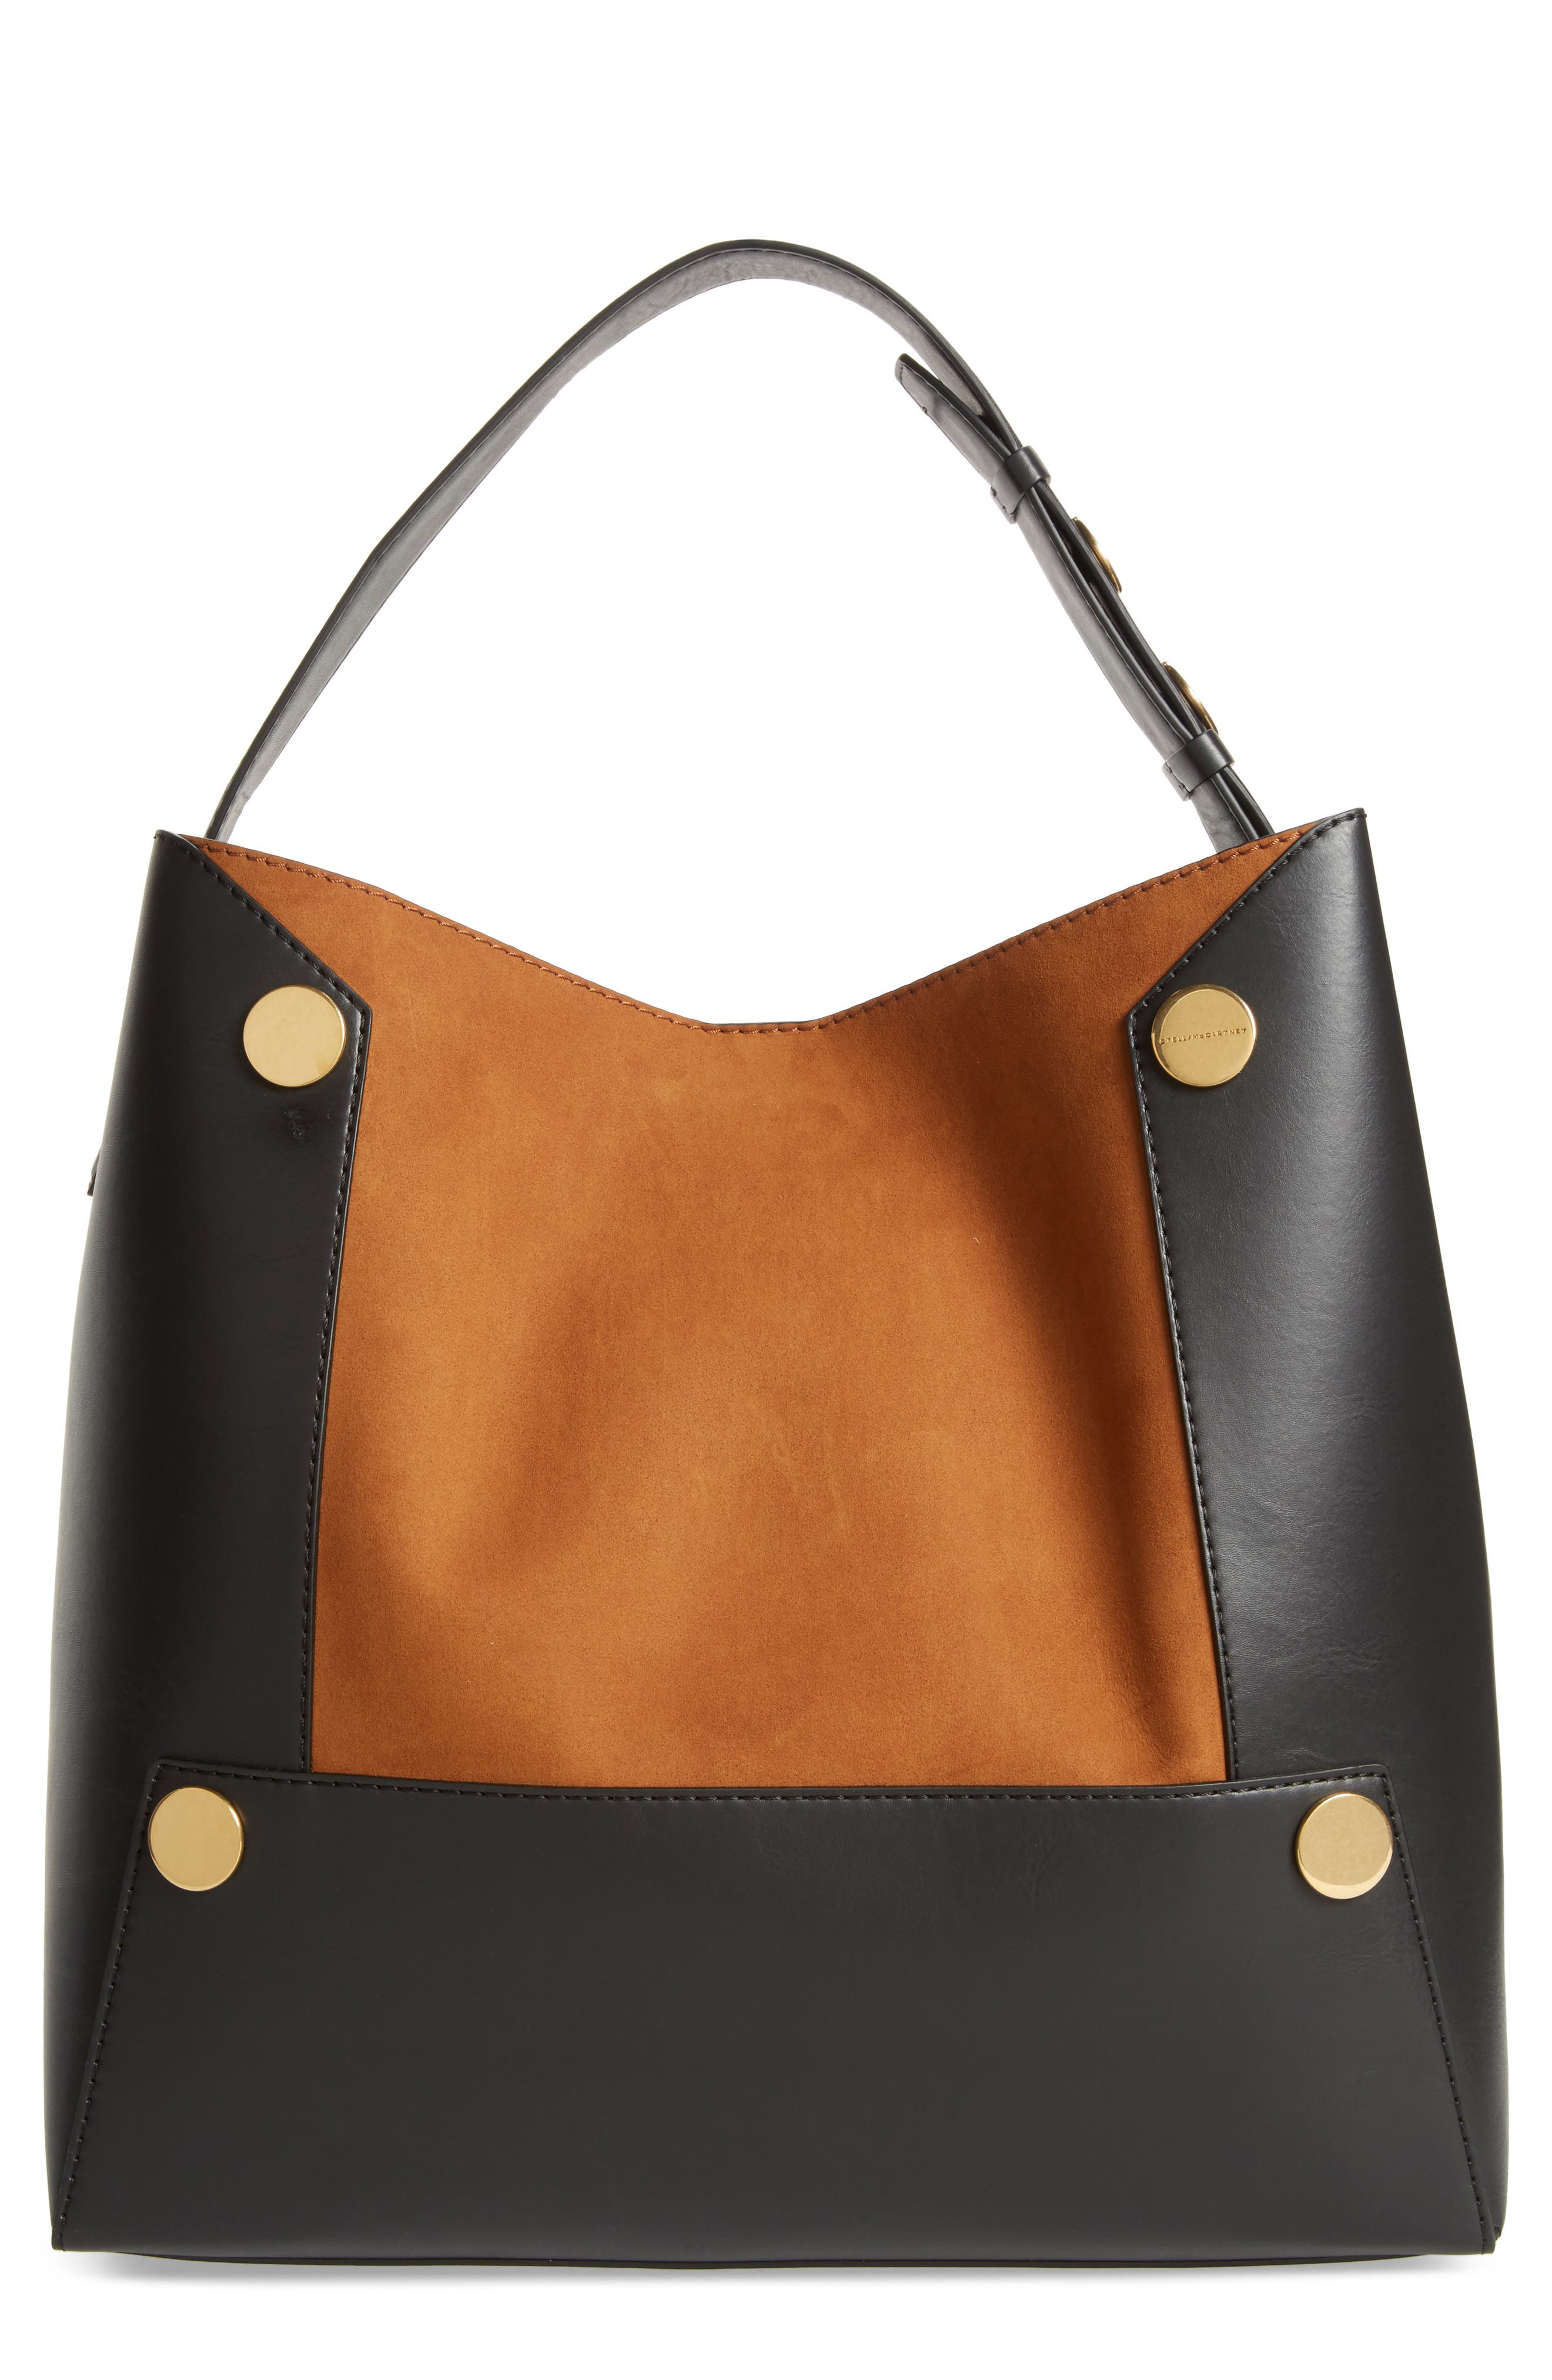 Stella McCartney Large Textured Faux Leather Bucket Bag